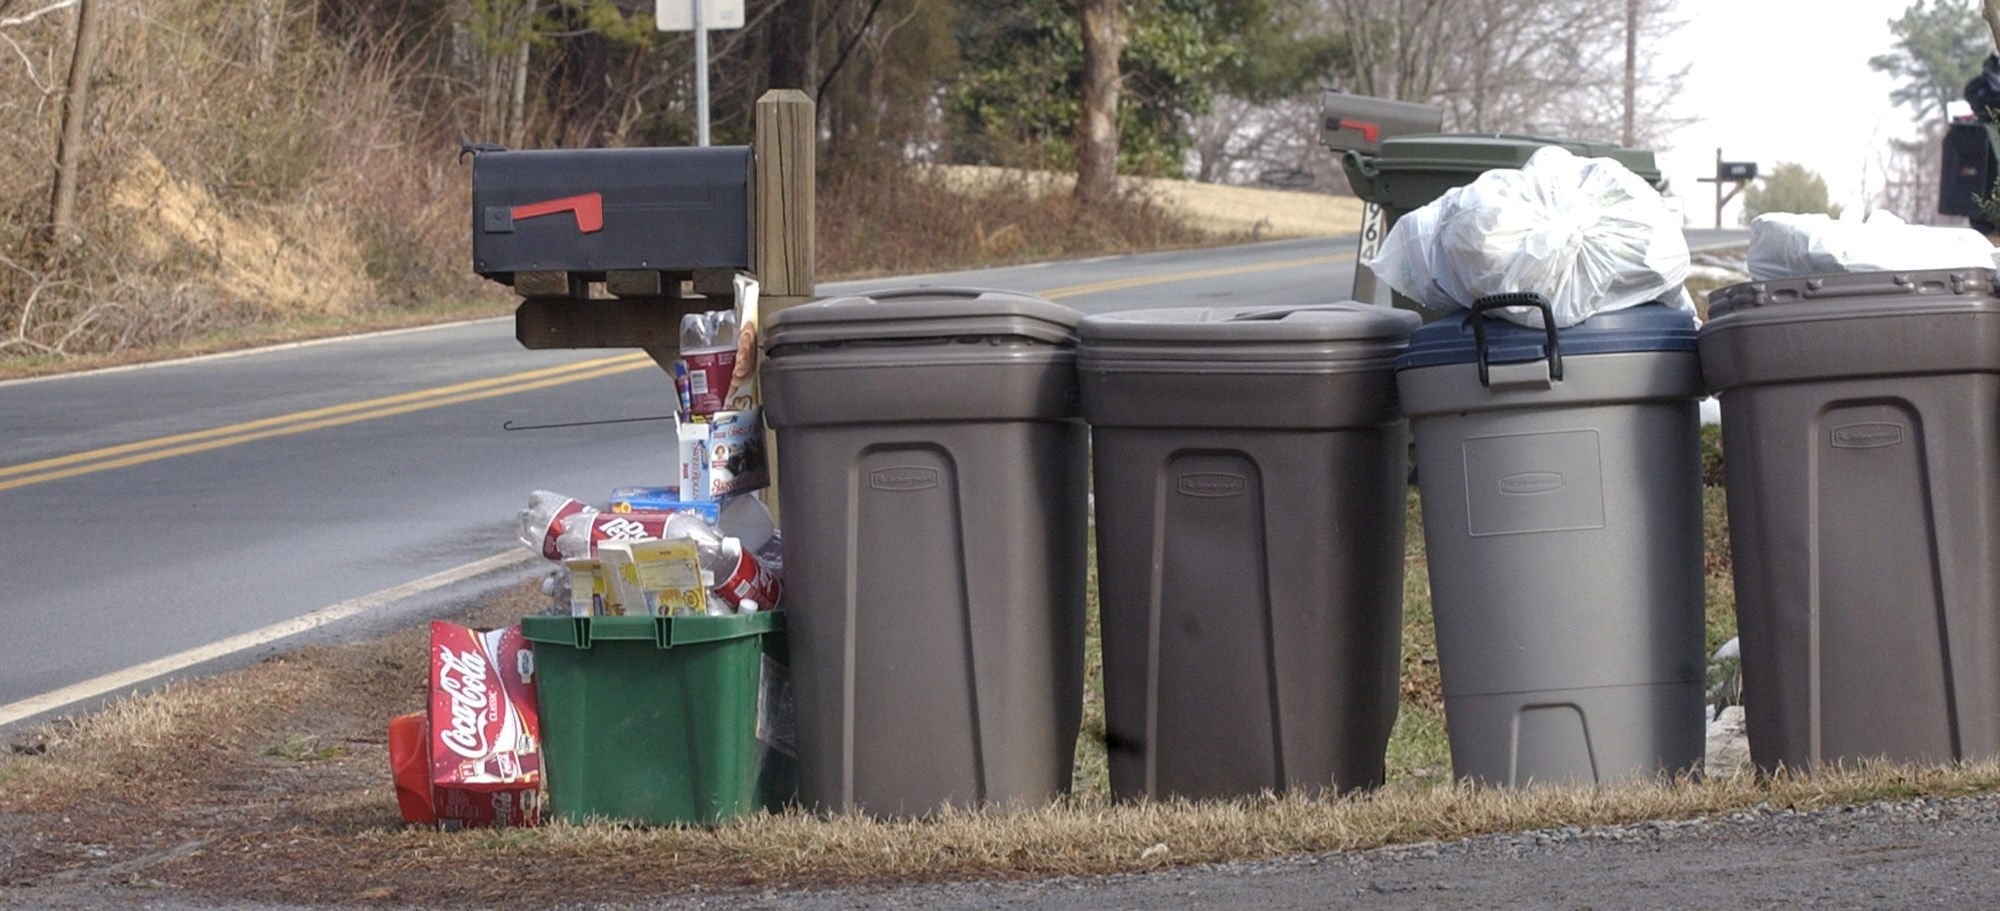 Garbage collection in Winston-Salem canceled for Tuesday; landfills open with adjusted hours | Winston Salem Journal